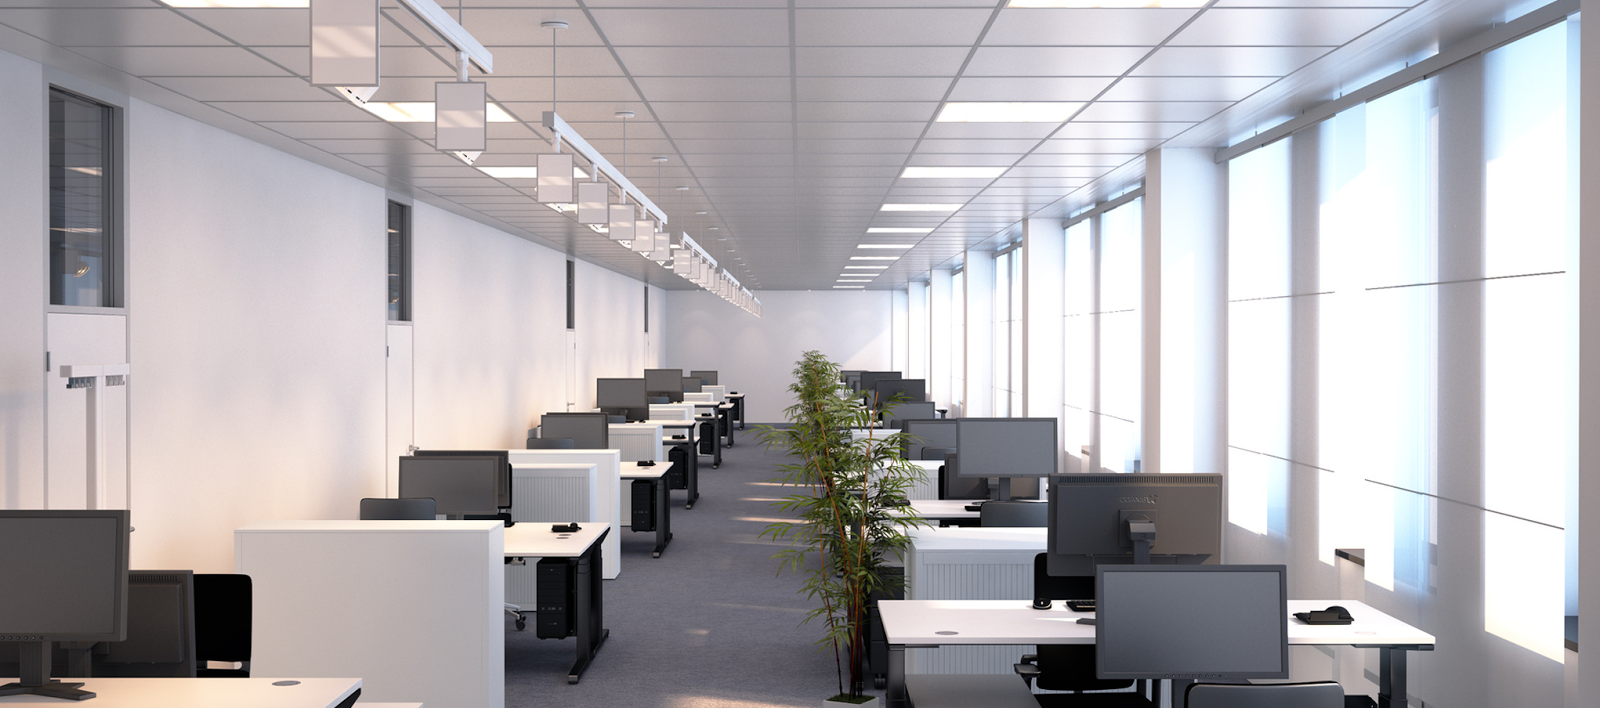 LED Office Lights manufacturers in India & LED Office Lights manufacturers | LED Office and Industrial lights ...